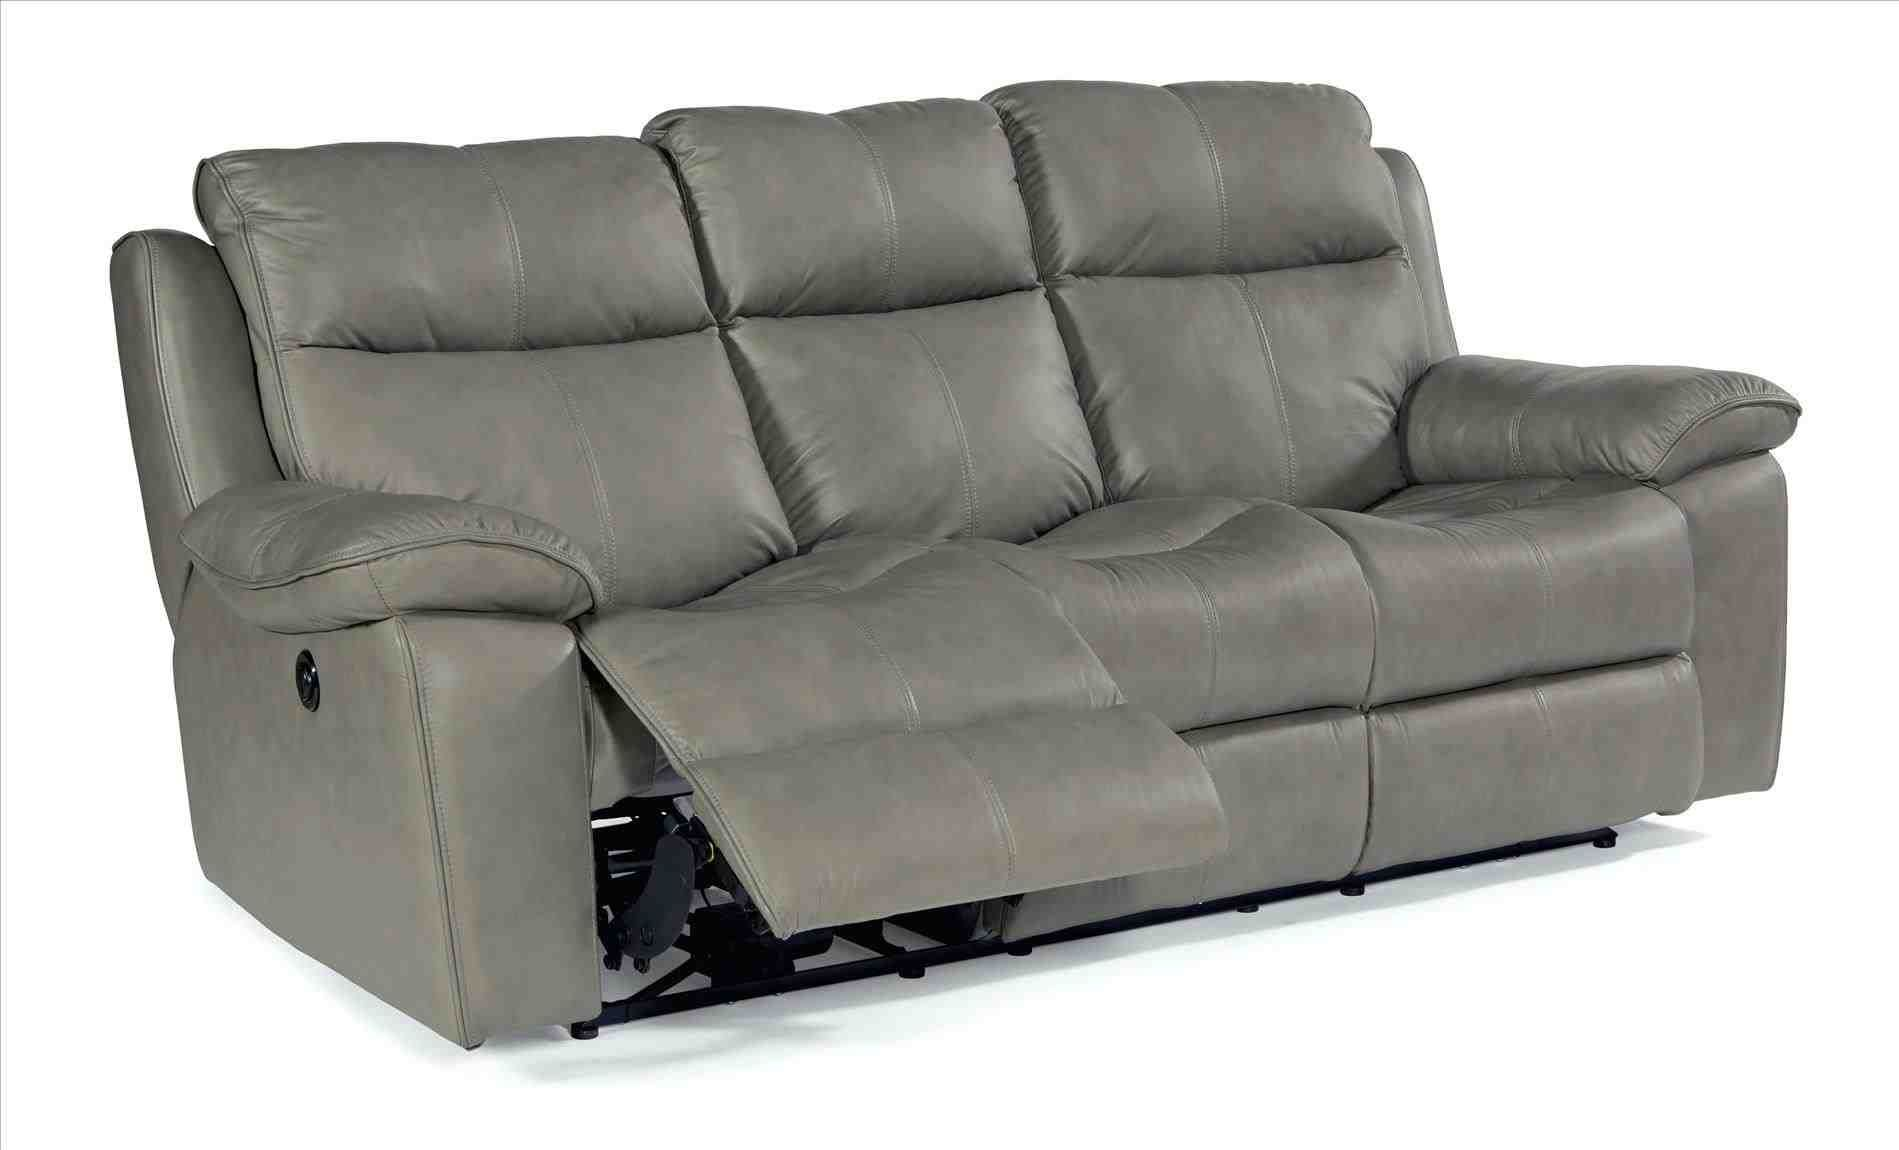 Buy Sofa Bed Singapore Cheap Sofas Sets Used Sofa Set For Sale